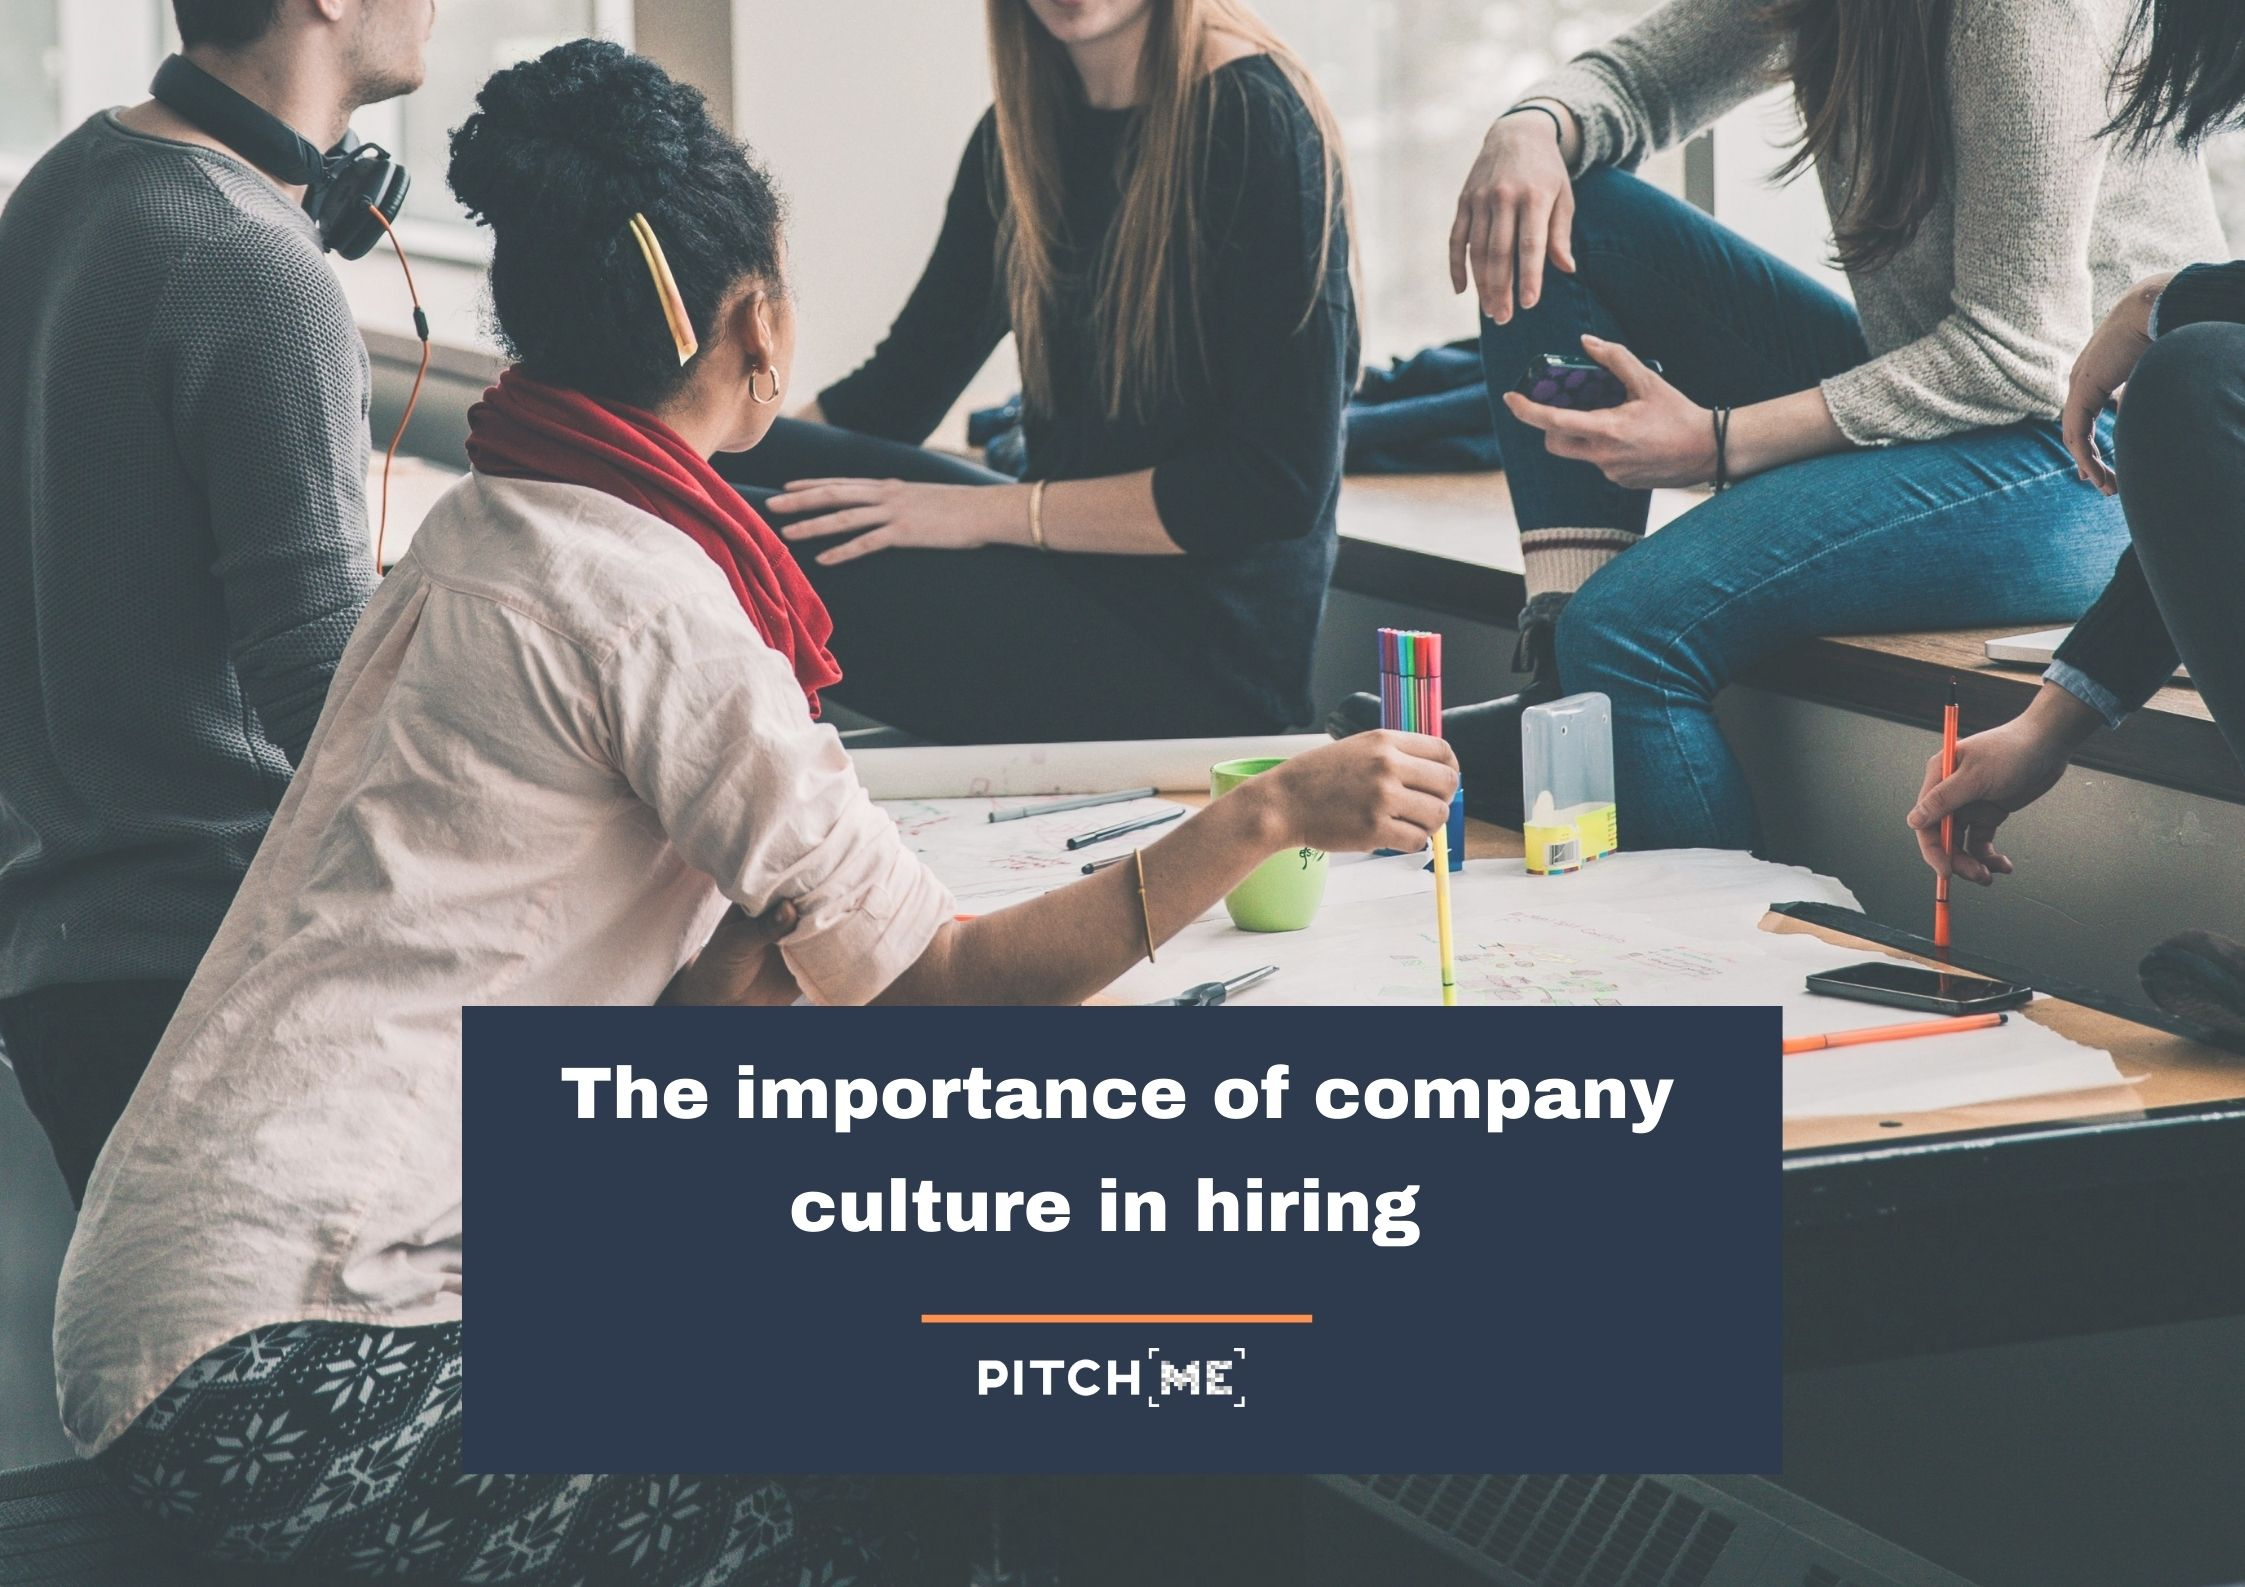 Company culture in hiring